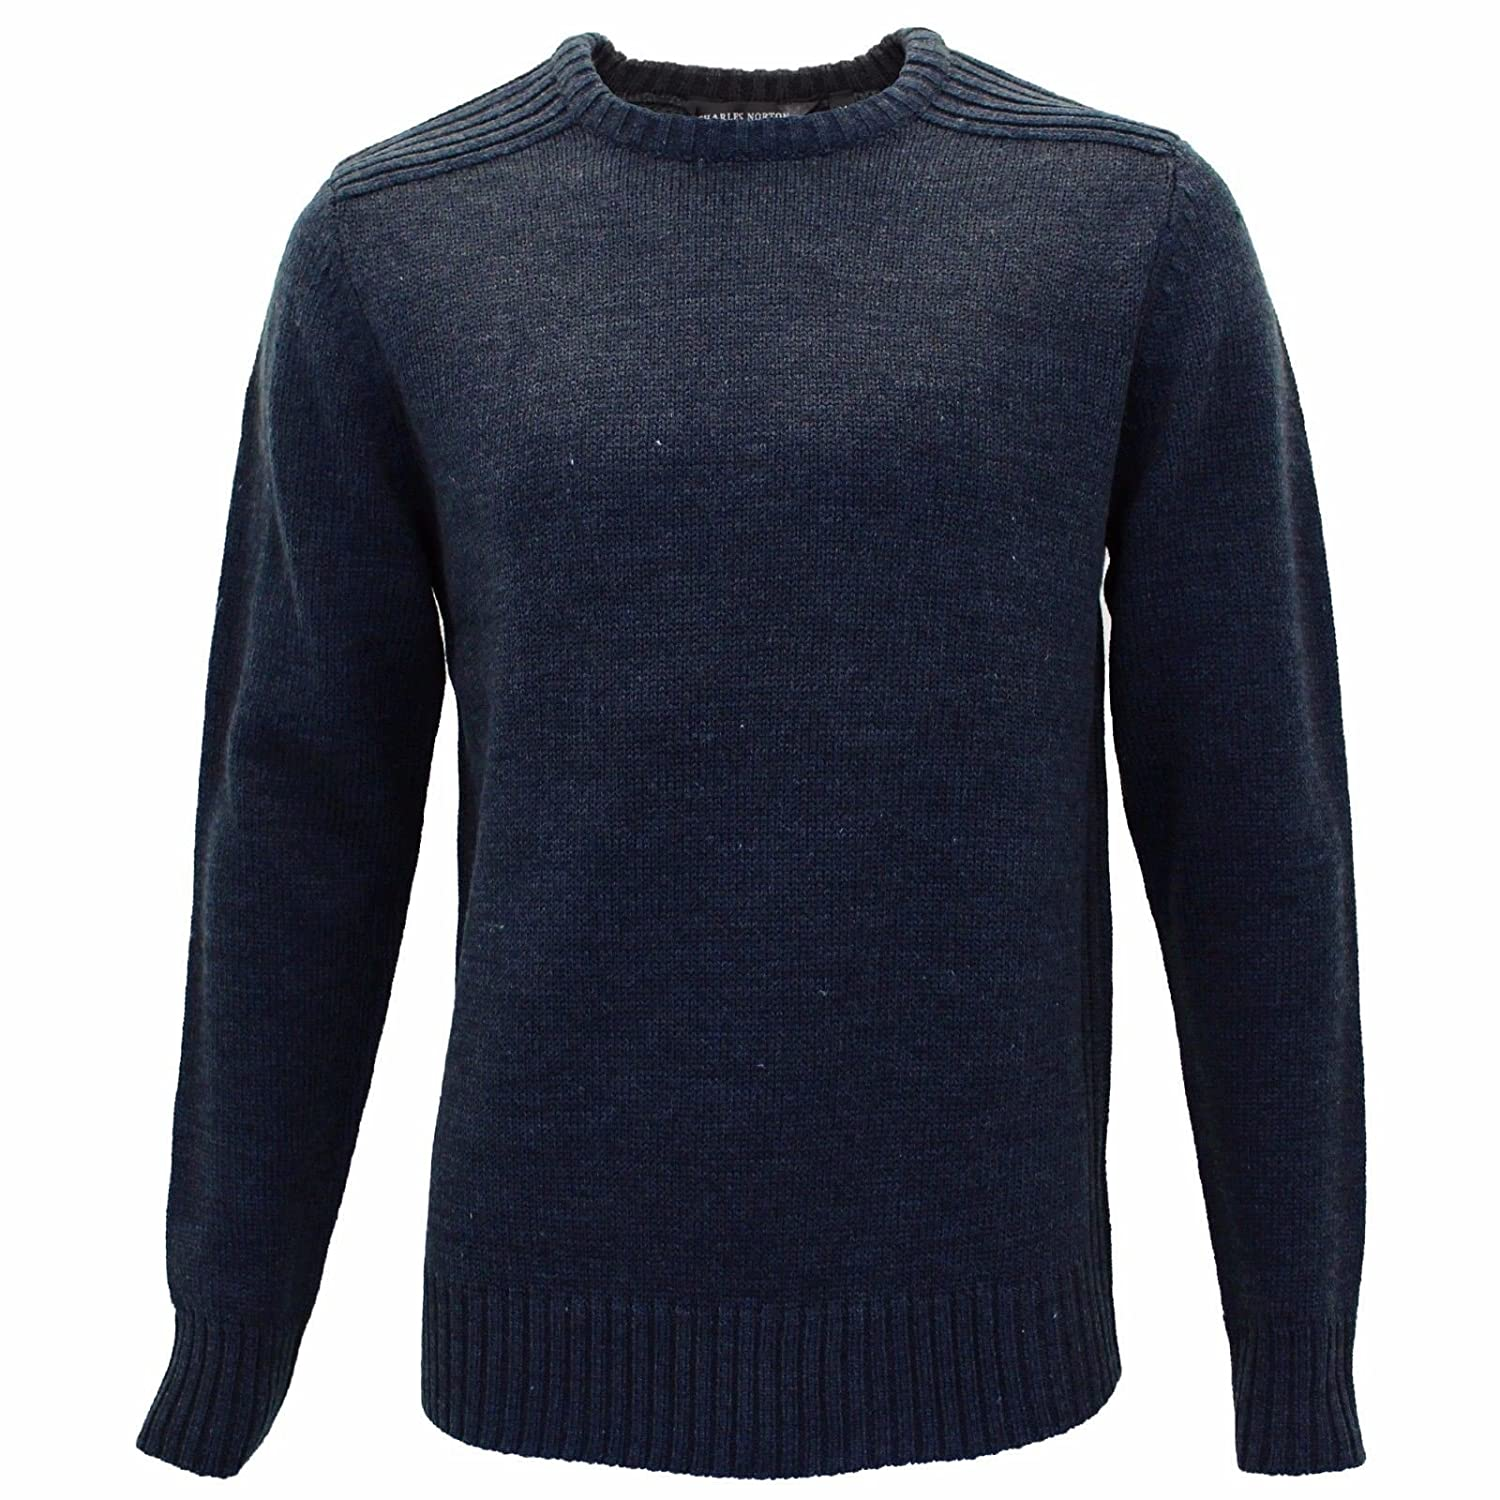 886a947ca1aab0 Charles Norton Mens Plain Crew Neck Casual Sweatshirt Pullover Sweater  Jumper  Amazon.co.uk  Clothing